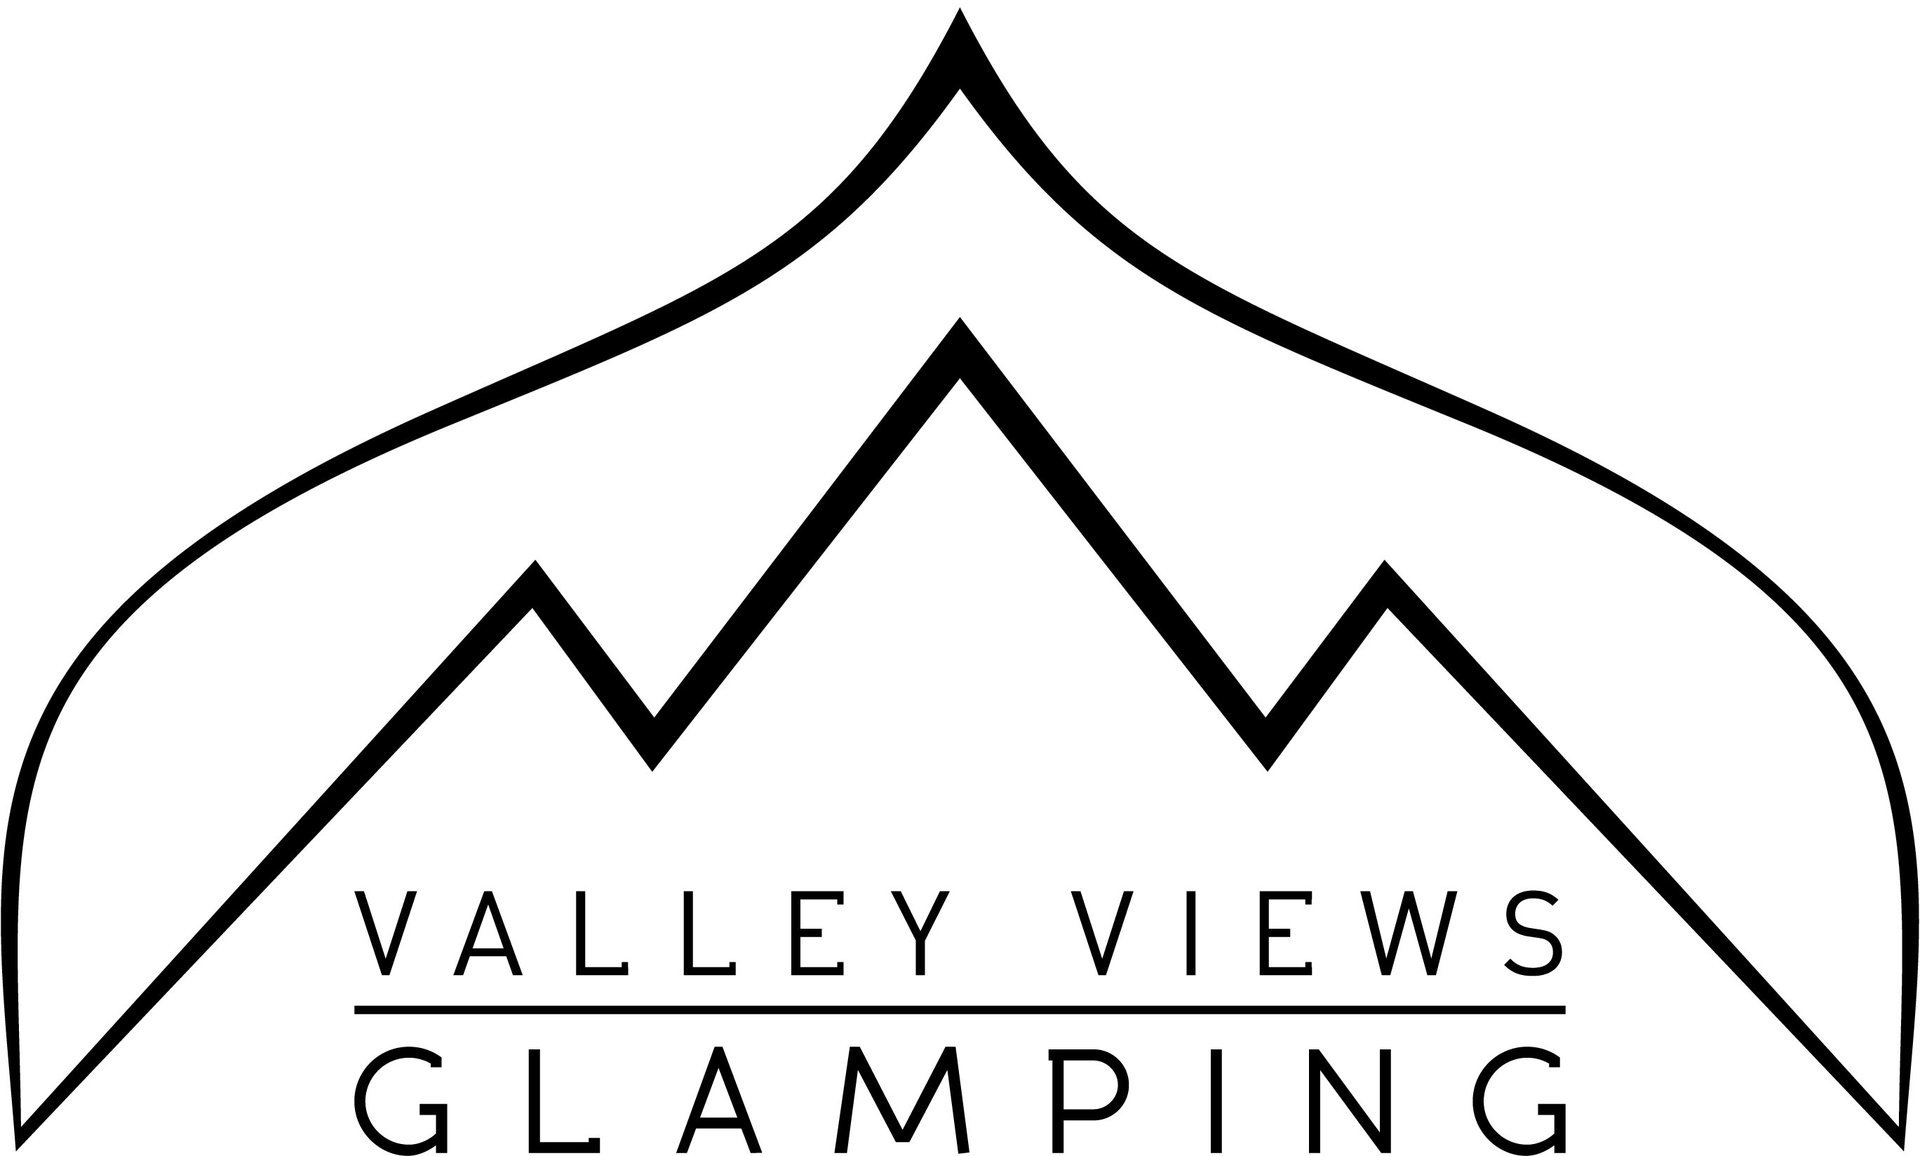 Logo for Valley view glamping